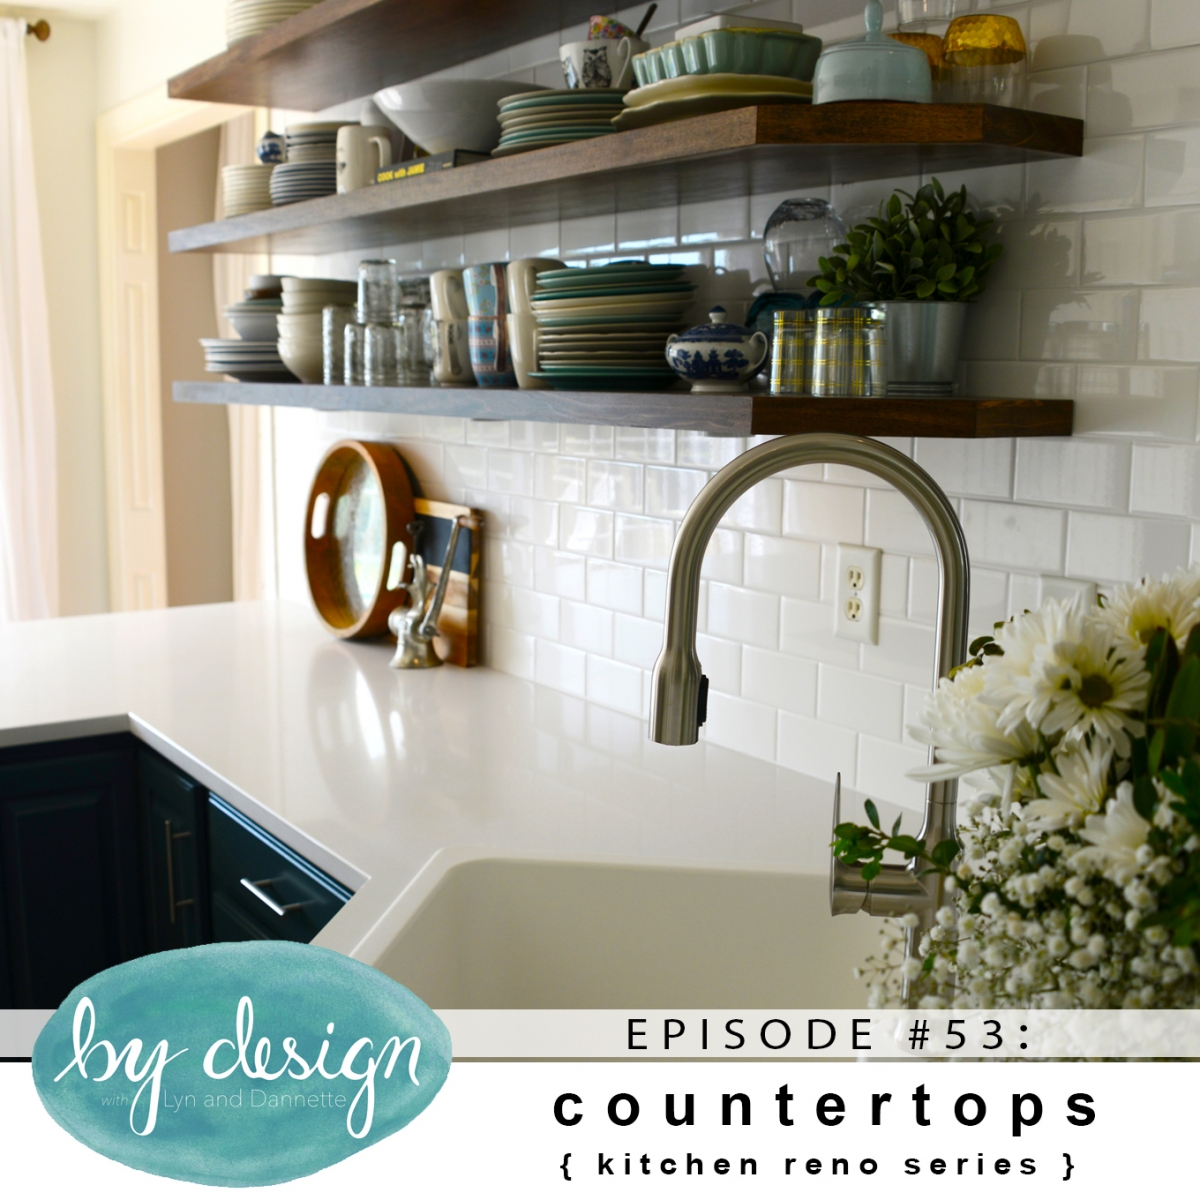 Weu0027re Continuing With Our Kitchen Reno Series And Today We Talk About  COUNTERTOPS. Lyndsye Shares More About Her Kitchen Reno And Why They Chose  The ...